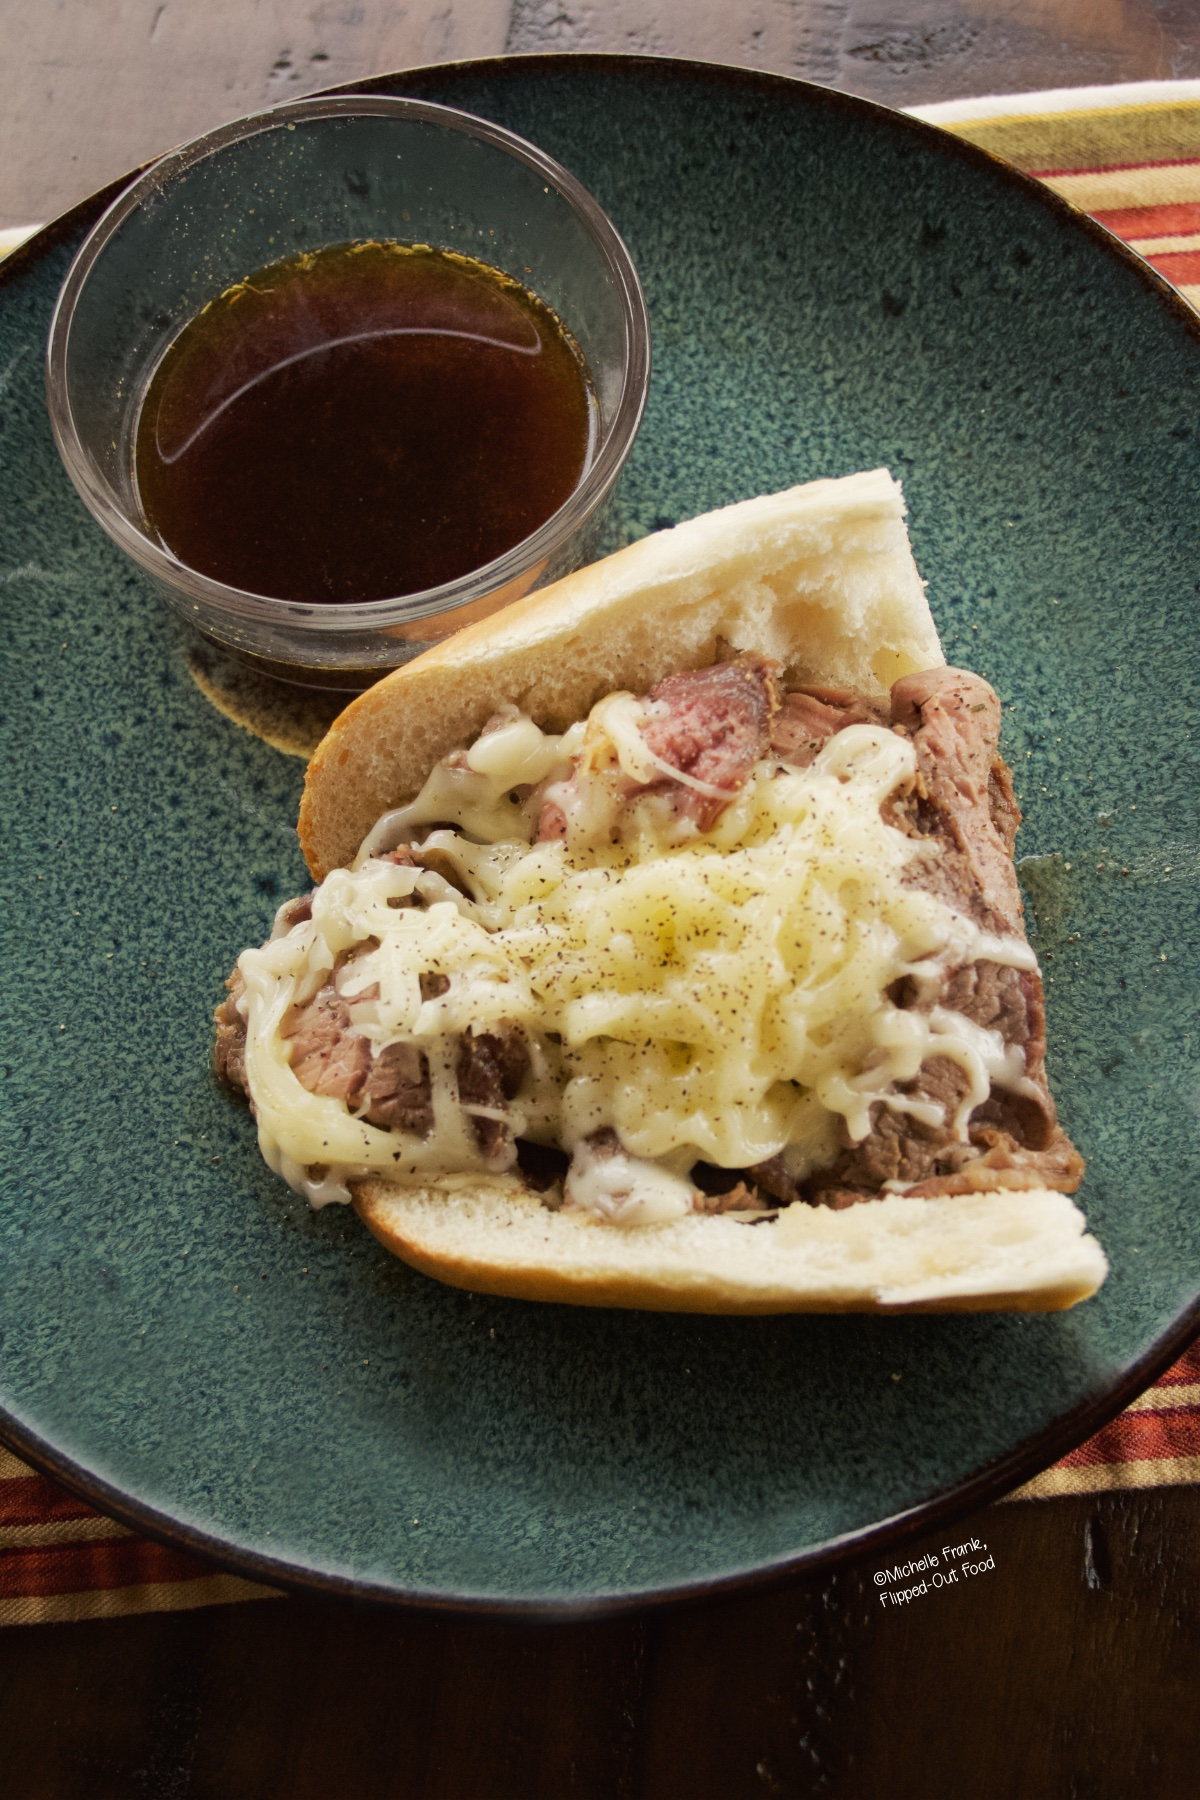 Overhead image of prime rib sandwich which details how the prime rib still had a medium rare doneness, even after reheating it.